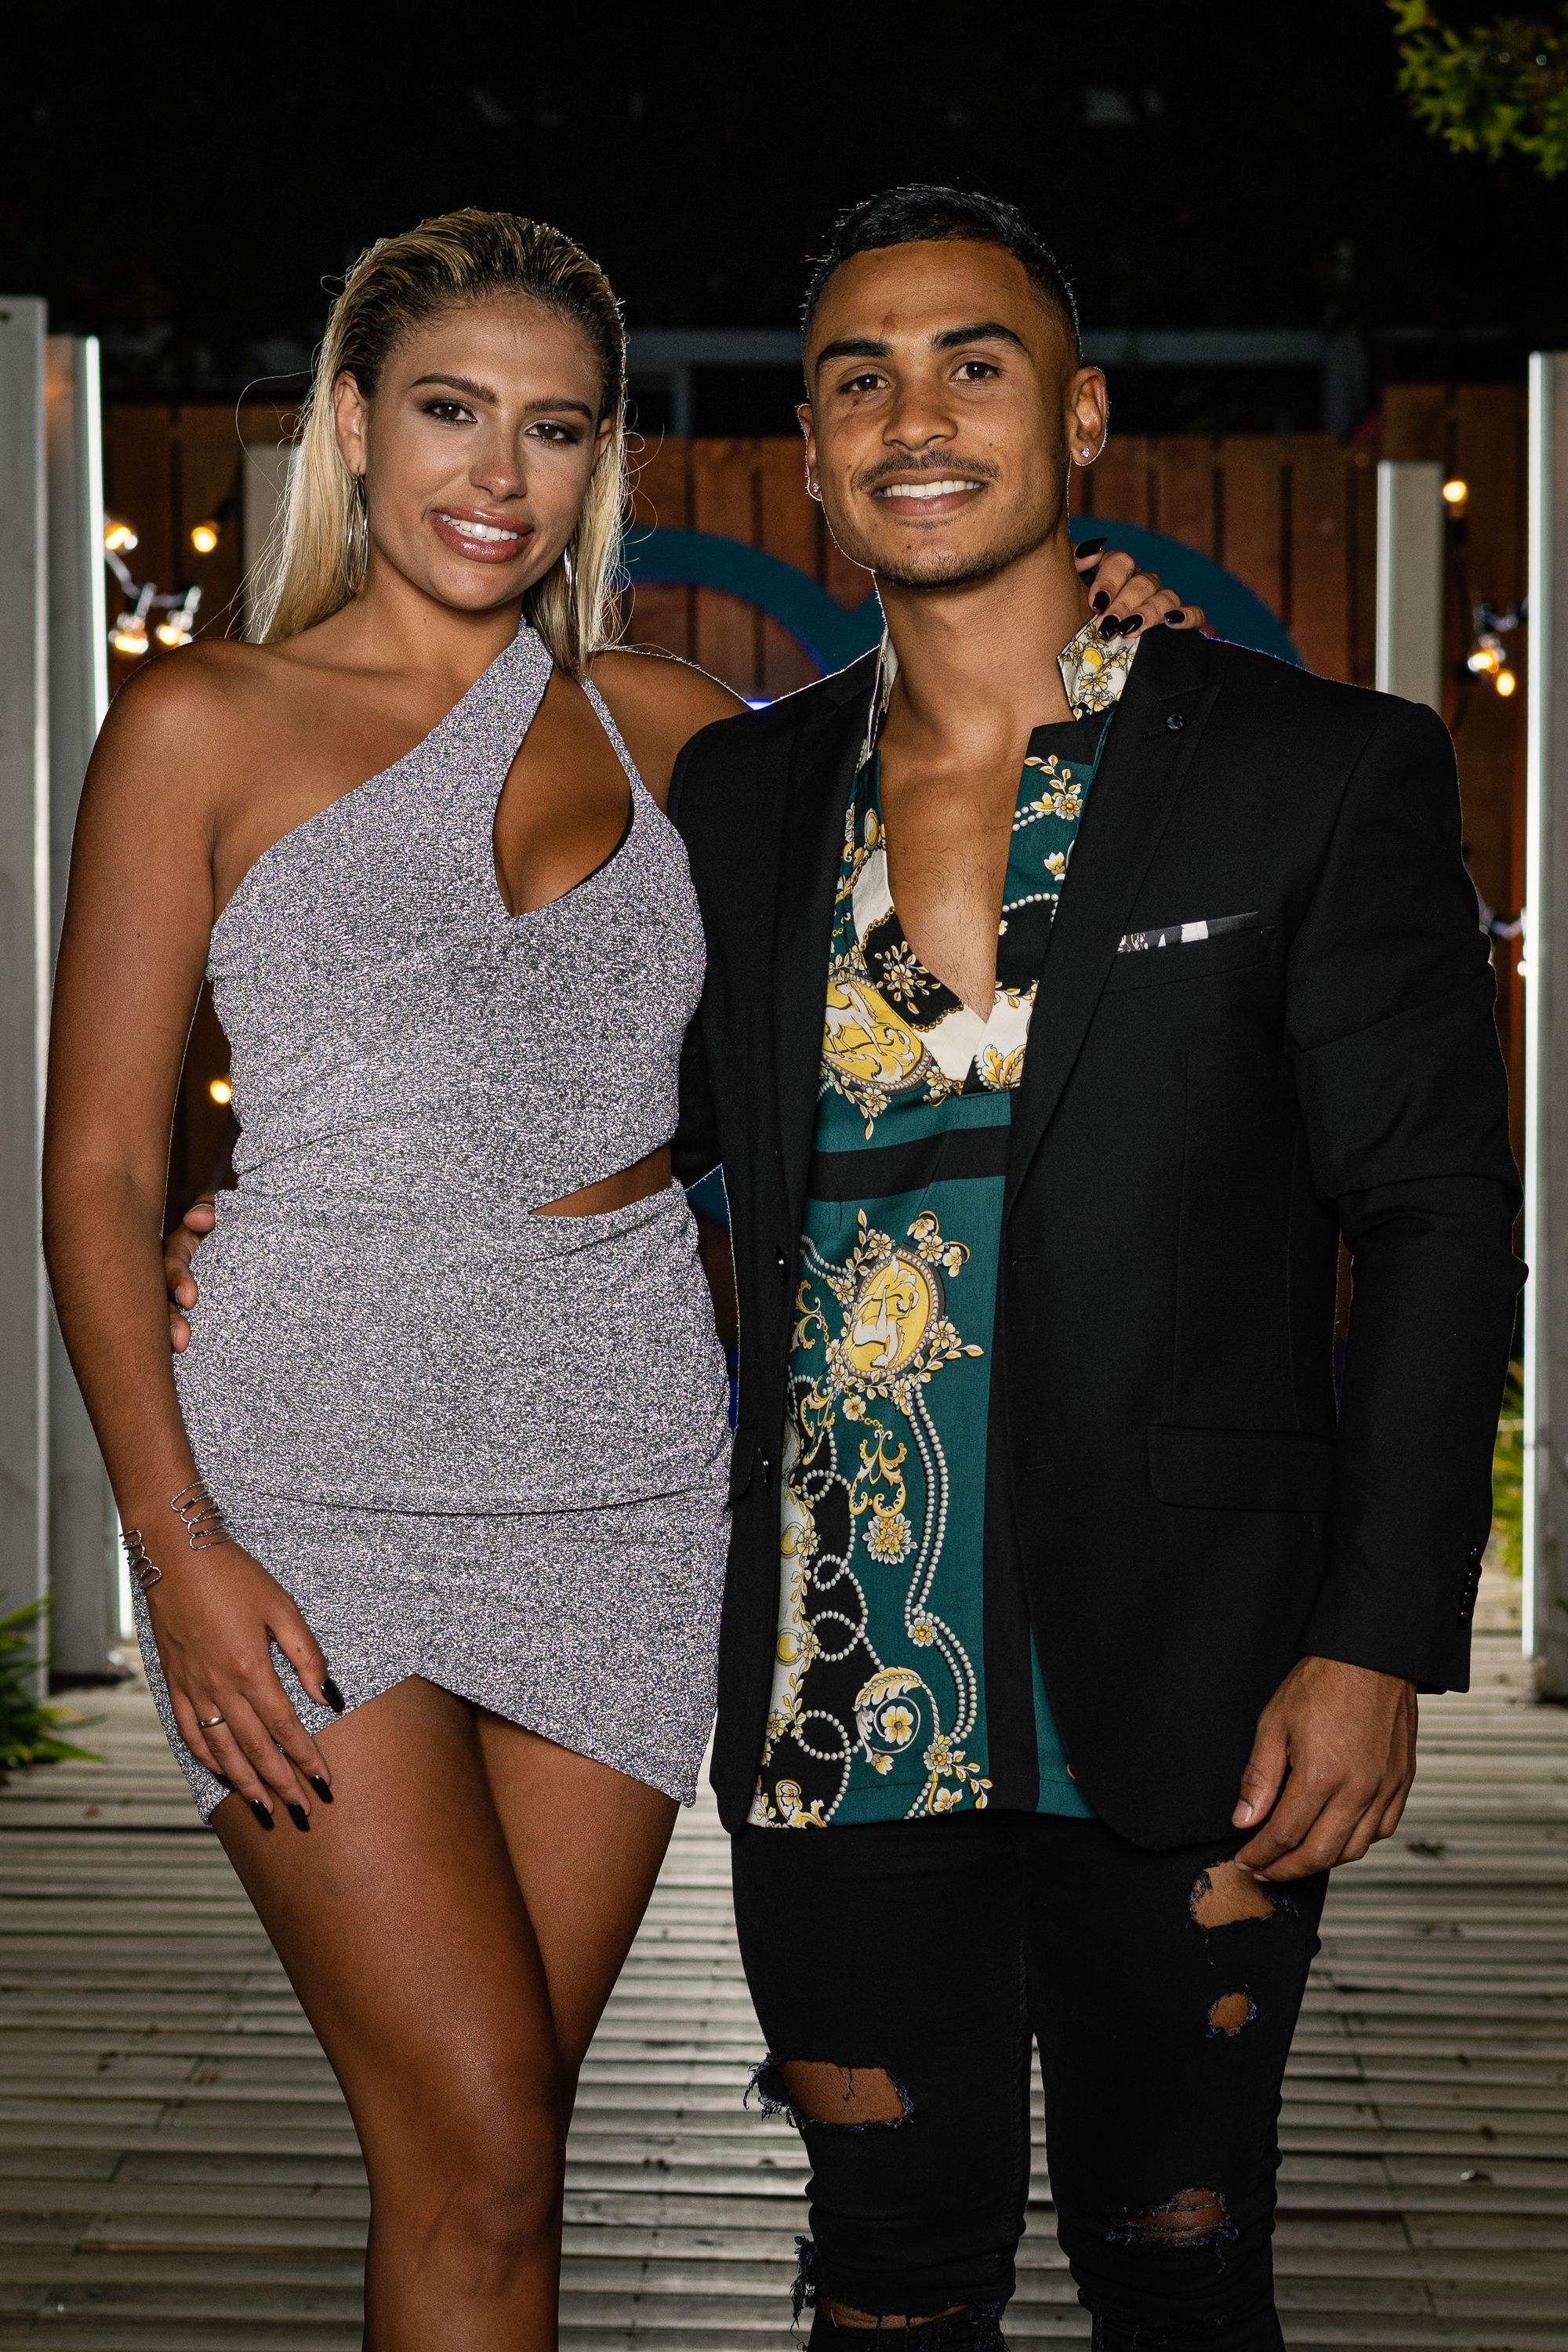 """Electronic Media Network (Pty) (Ltd)1985/002853/06Love Island SA on M-Net 101Pictured: Finale - Millie & AsadThis photograph is copyrighted by M-Net and can only be used for editorial purposes in direct connection with the programme or event mentioned above (""""Permitted Use""""). This photograph will not be used in any other way other than the Permitted Use. Without limitation to the generality of the foregoing, this photograph will not be used, framed or linked in such a way that the photograph appears as part of any unauthorised public domain. This photograph must not be syndicated by any other company, publication or website, or permanently archived without the express written permission by M-Net Publicity."""